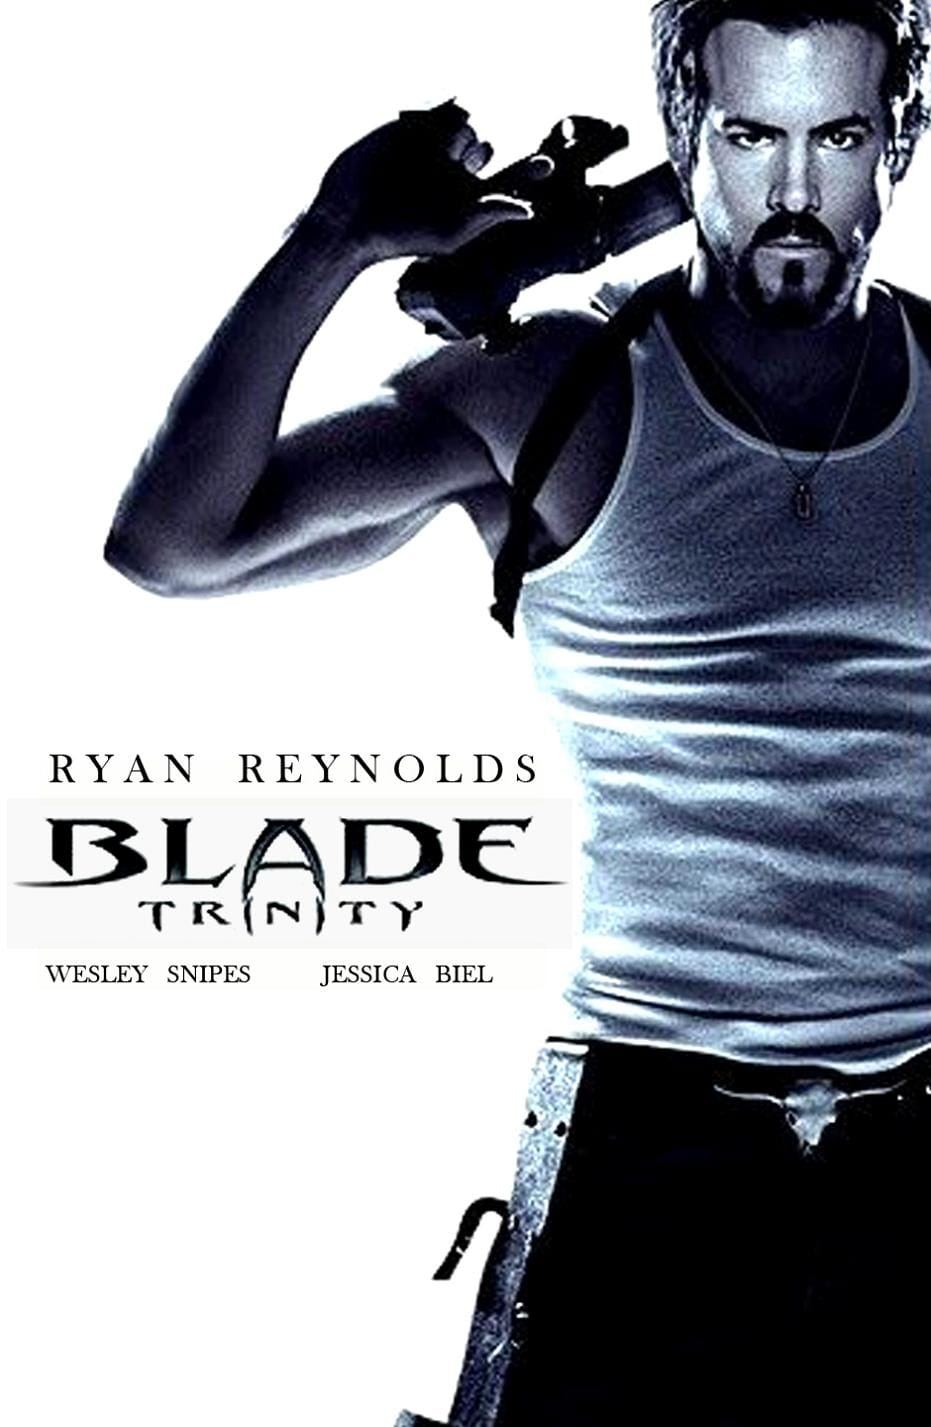 blade trinity full movie rcf show part 1